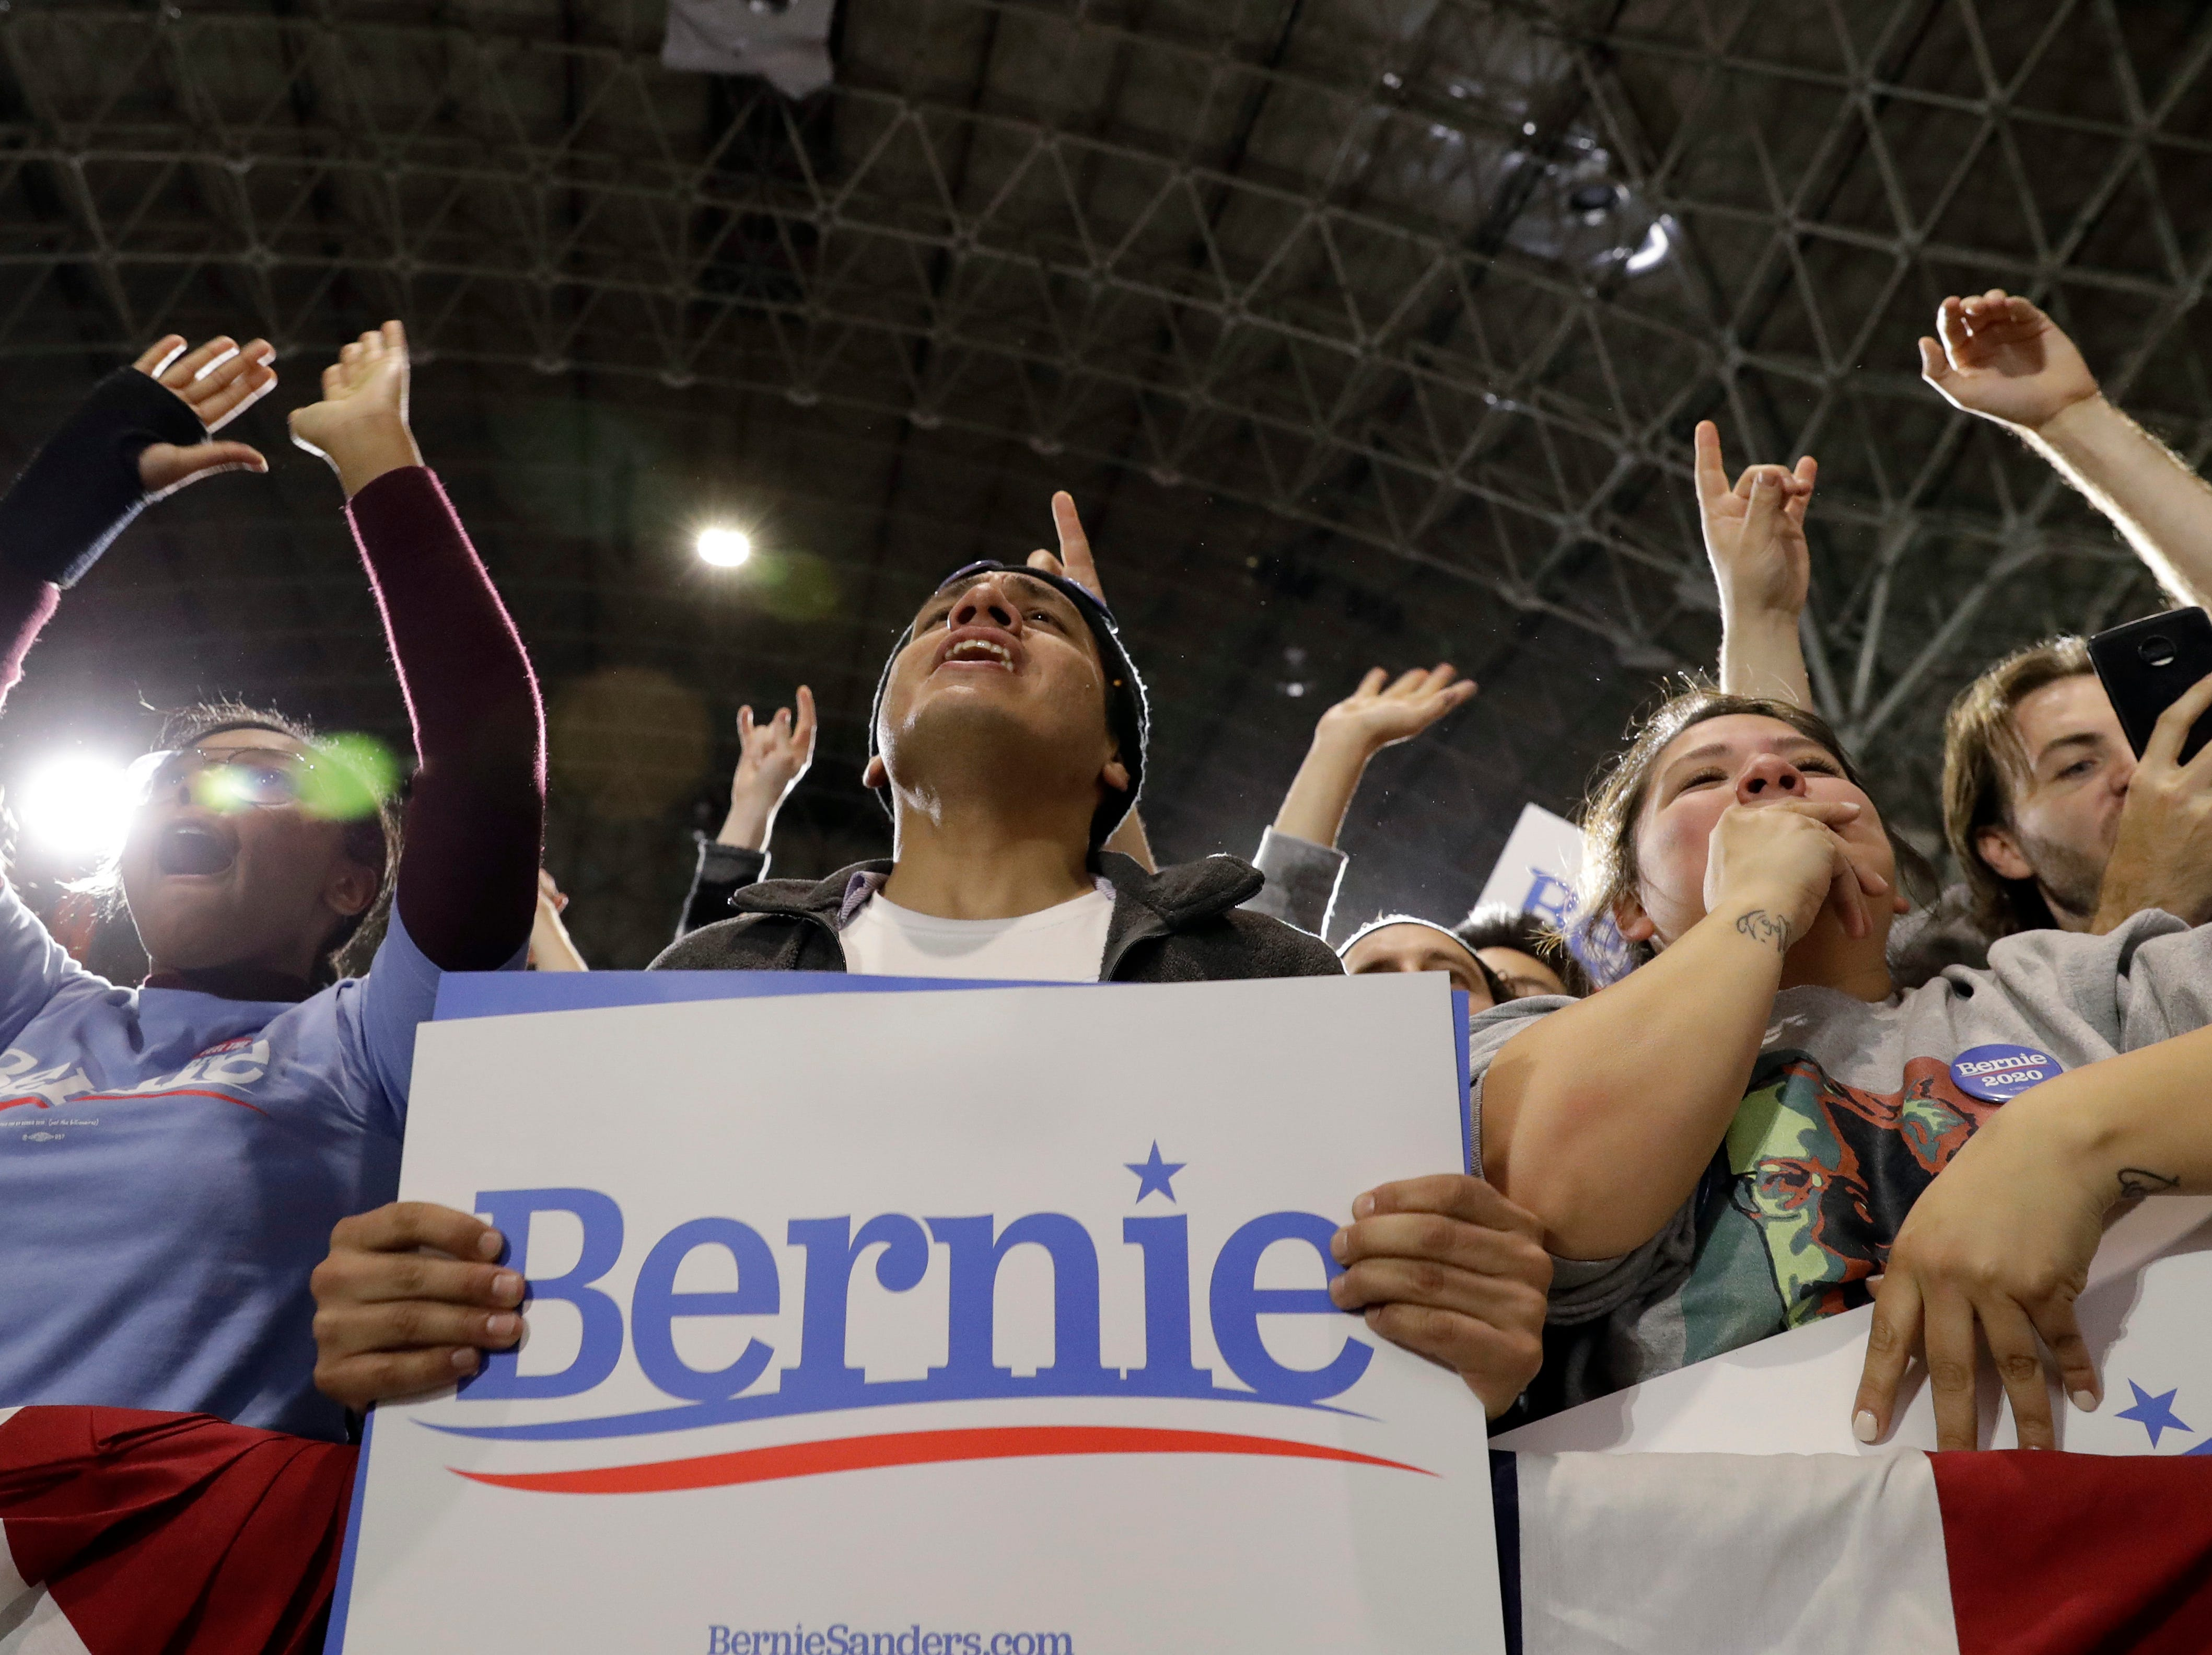 Supporters react as they listen to Sen. Bernie Sanders, I-Vt., where he kicks off his 2020 presidential campaign at Navy Pier in Chicago, Sunday, March 3, 2019. Over the next several weeks, Sanders will travel to Iowa, New Hampshire, South Carolina, Nevada, and California. He will then return to Burlington, Vt., for the official launch of his campaign.